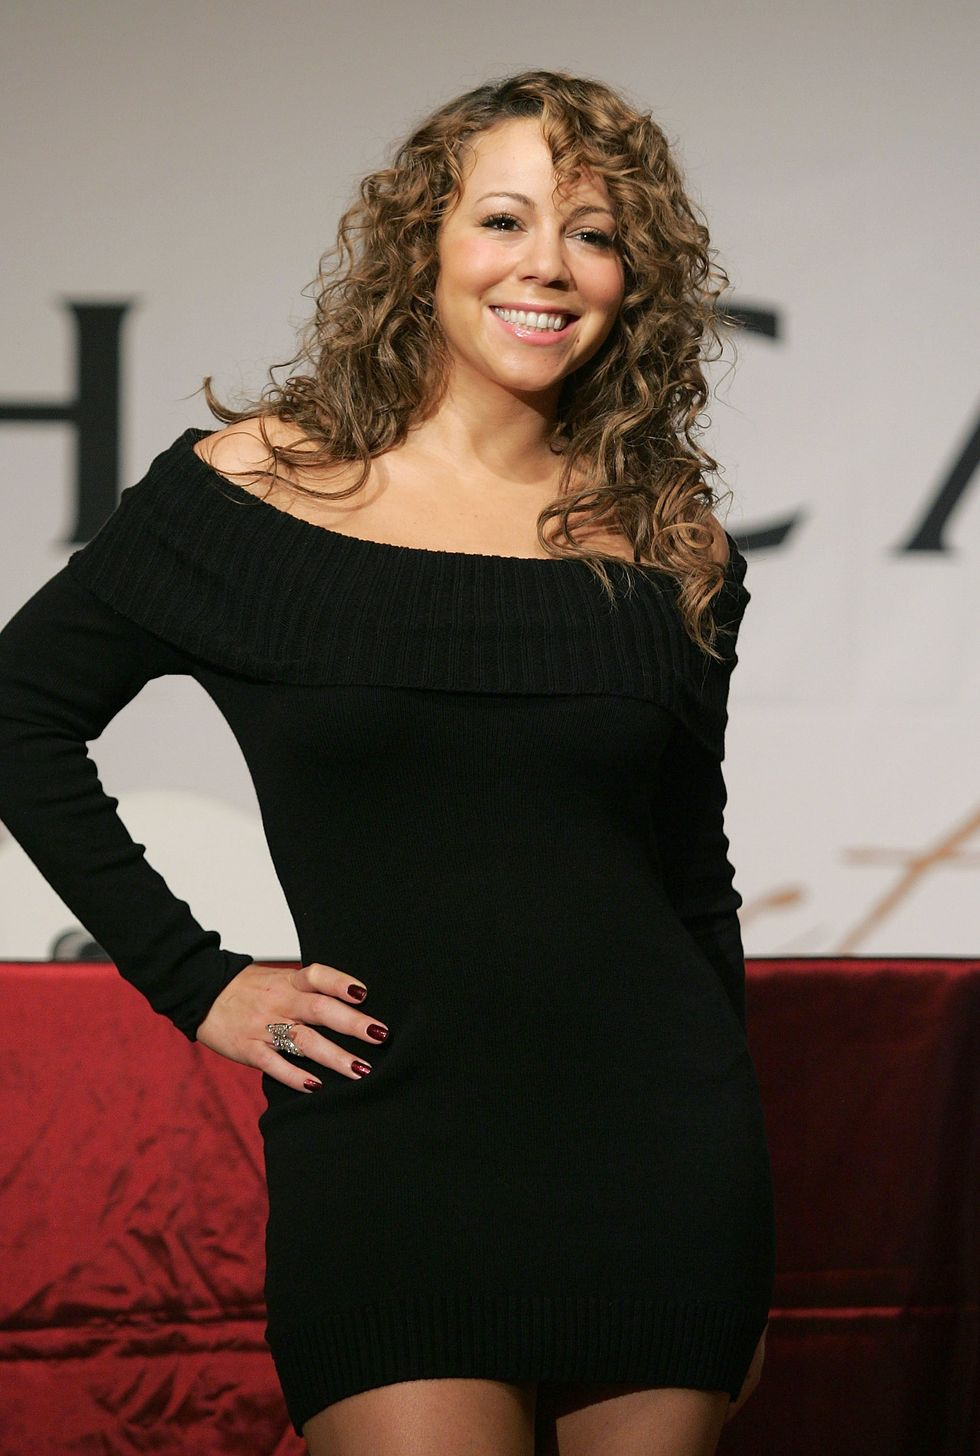 mariah-carey-memoirs-of-an-imperfect-angel-promotion-in-seoul-01